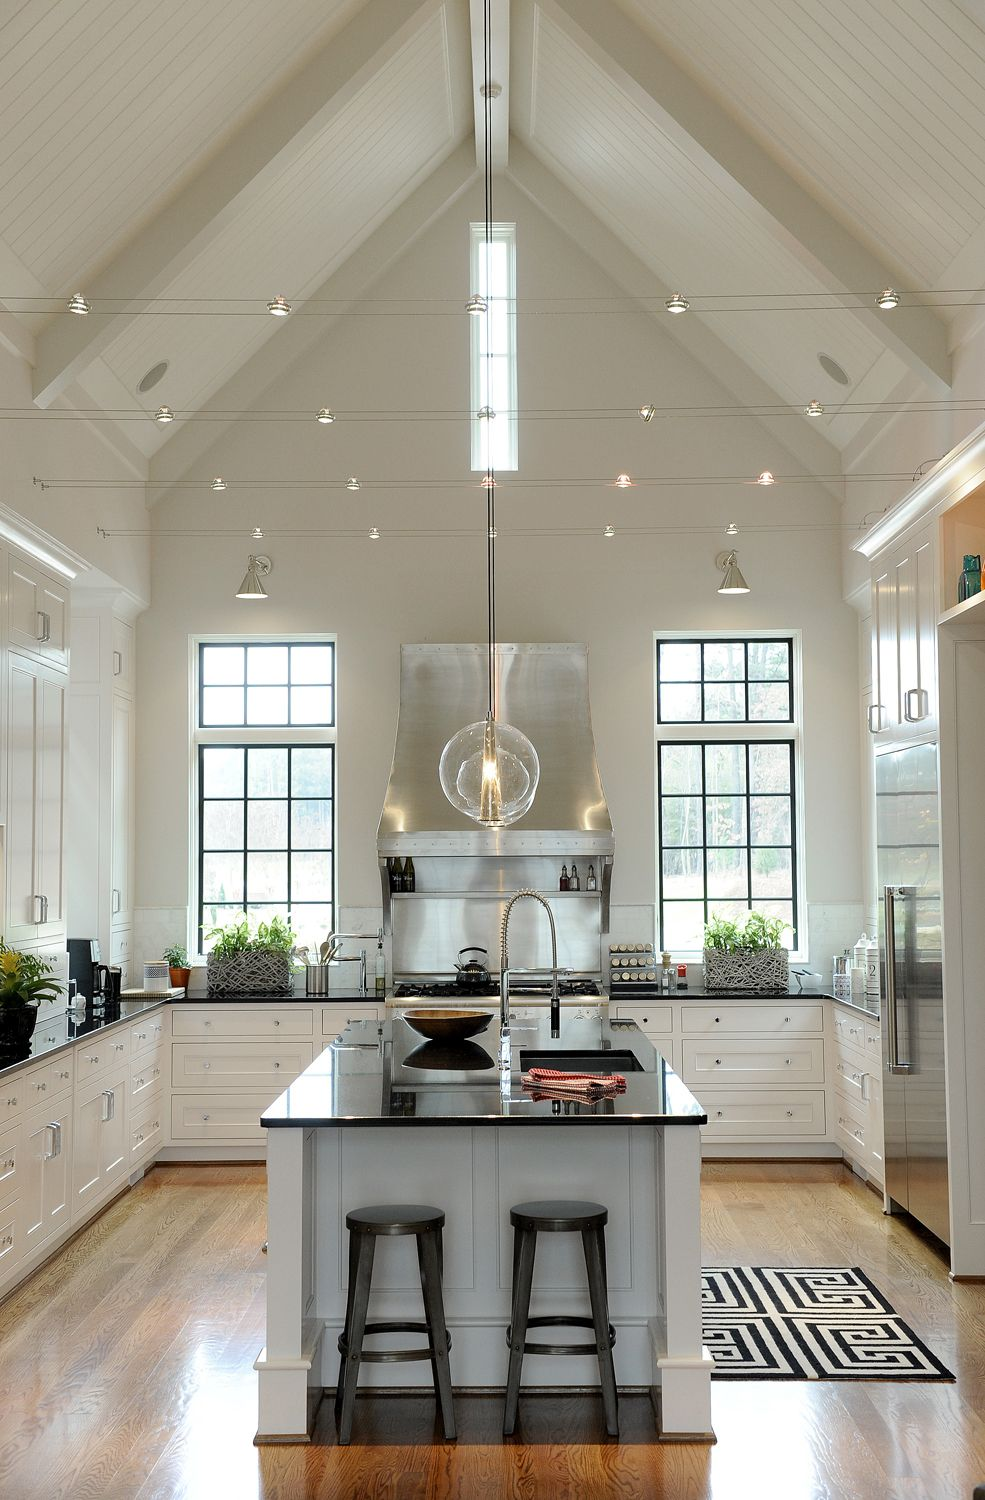 Vaulted ceilings 101 history pros cons and inspirational love the lighting and openness award winning kitchen vaulted ceiling lights mozeypictures Image collections